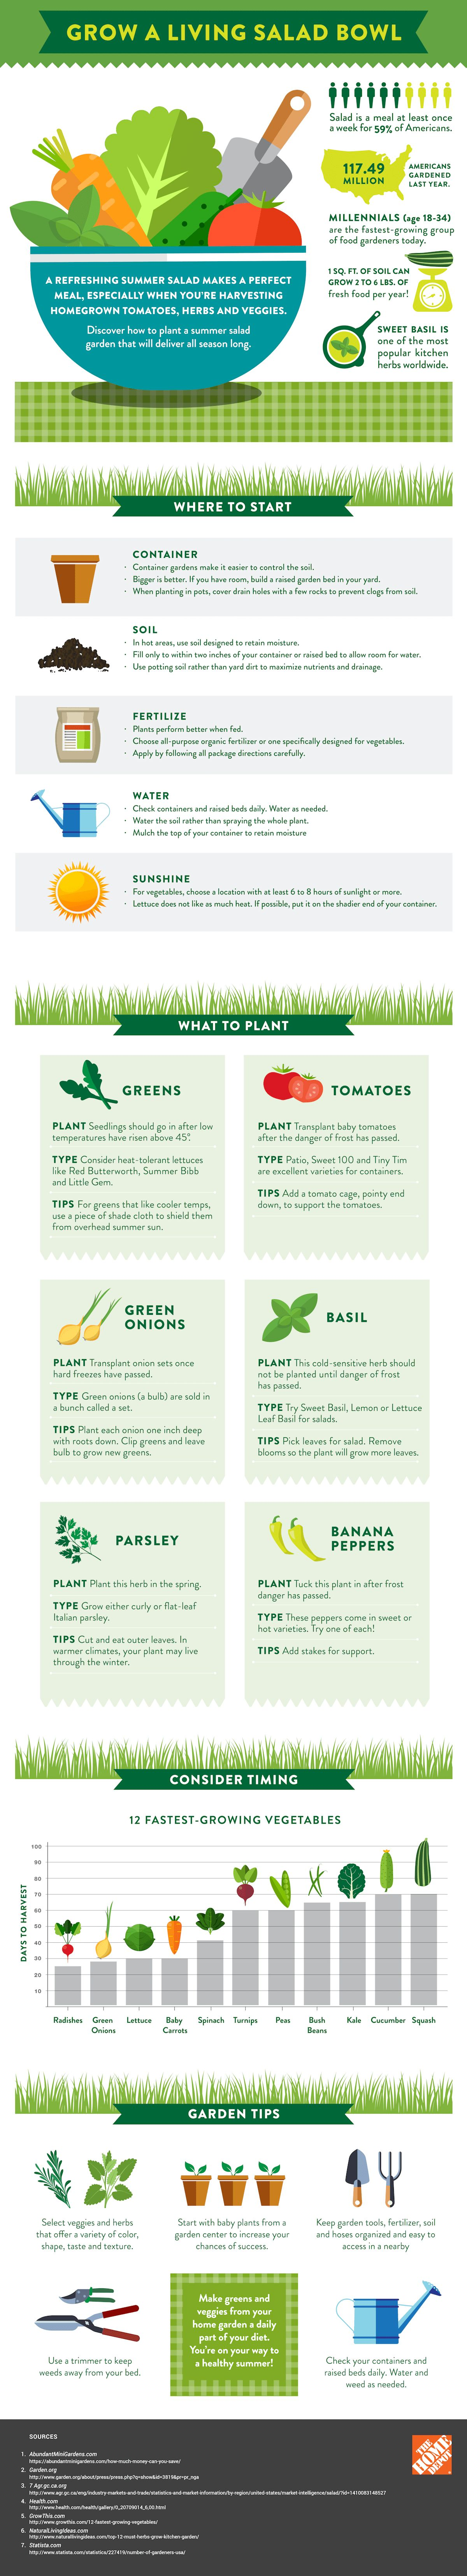 A Guide to Growing Your Own Living Salad Garden | Salad bowls ...